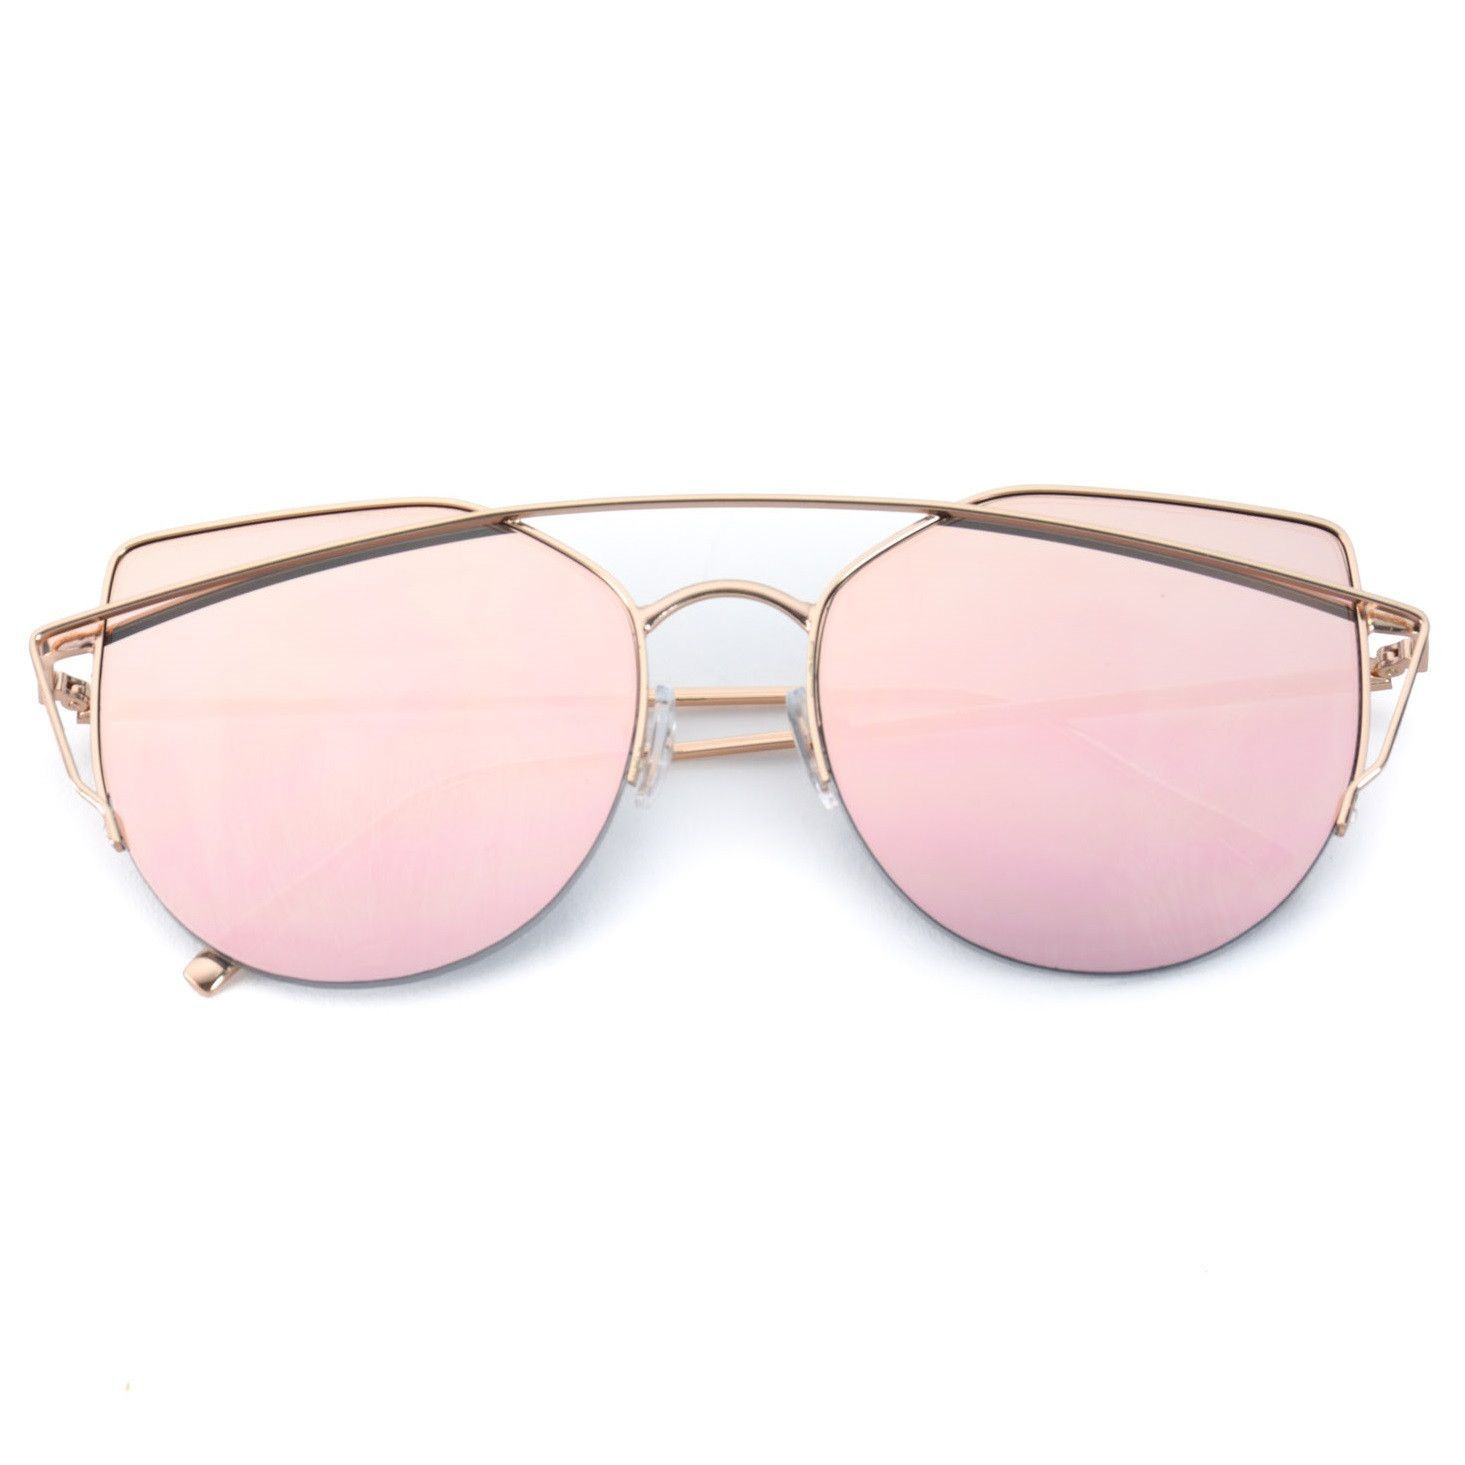 Cute Glassware Feel Like A Celebrity With This Cute Baby Pink Sunnies